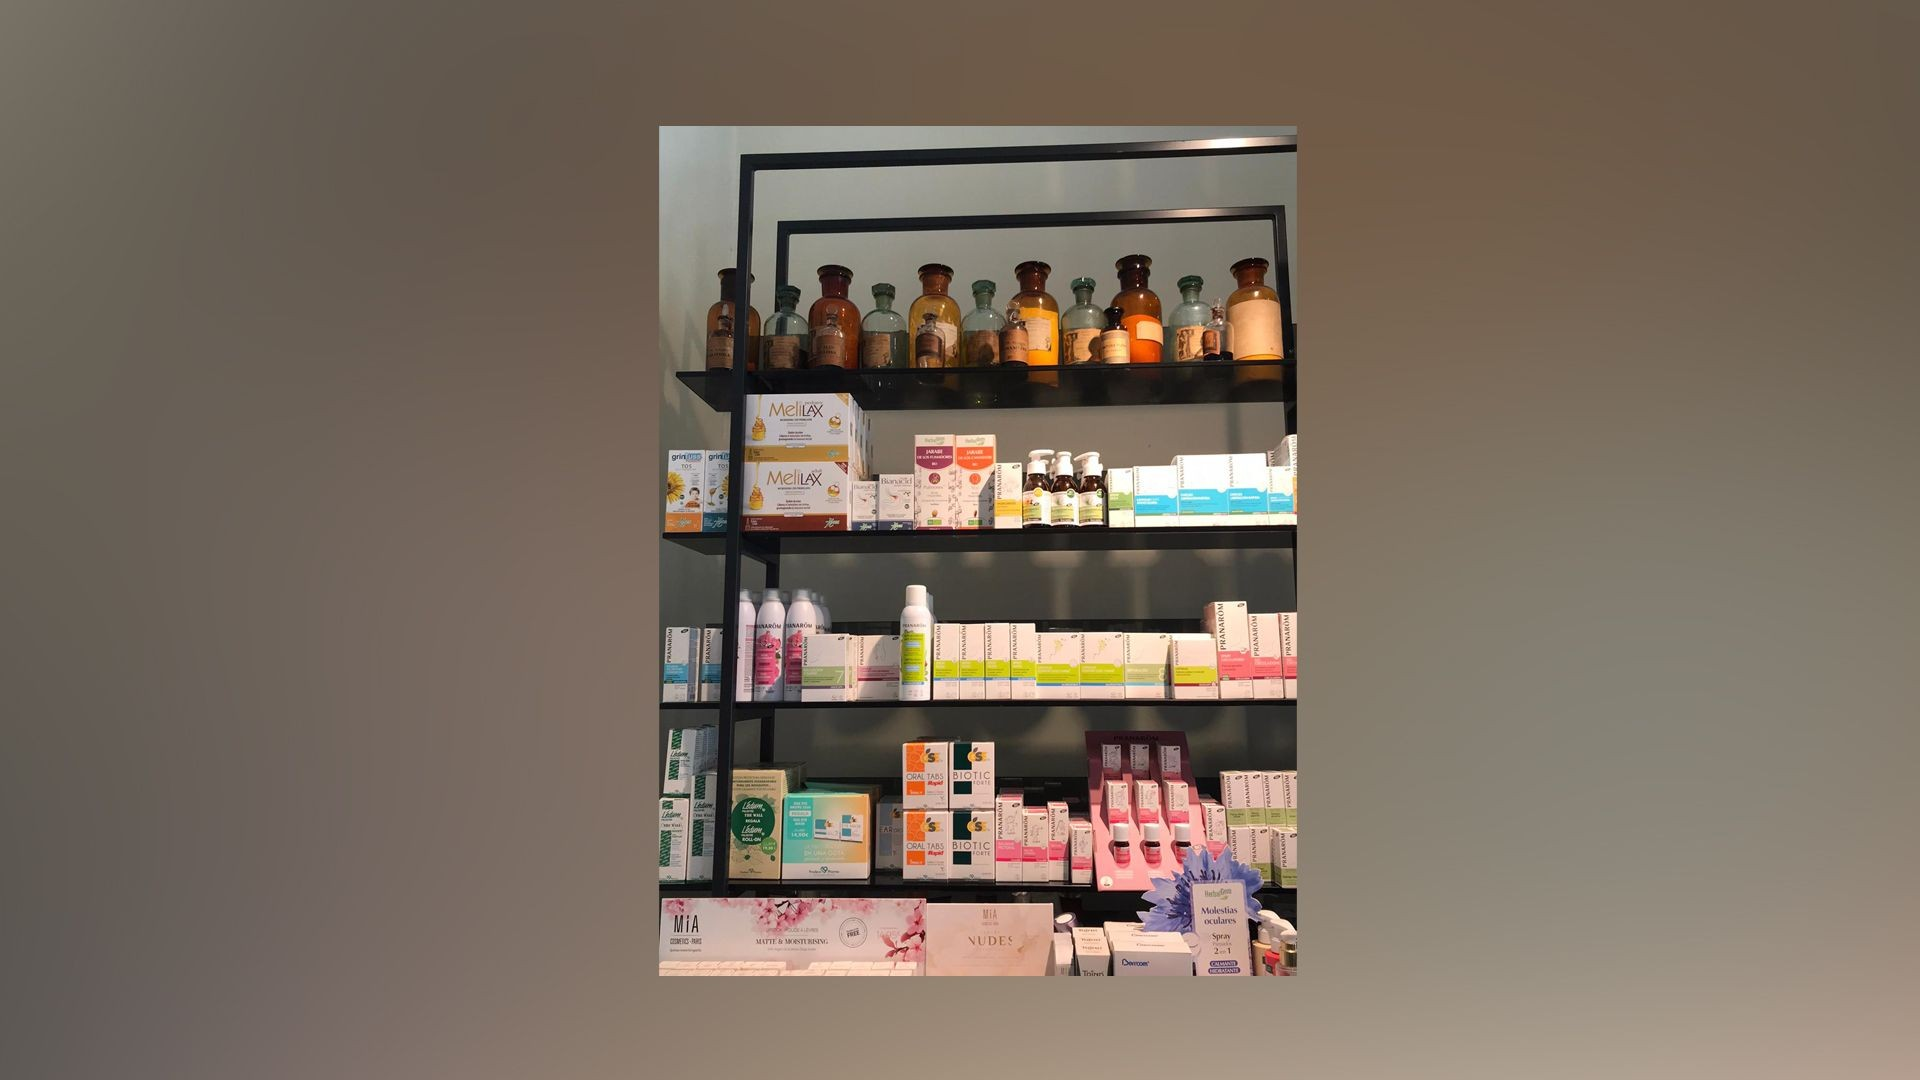 Farmacias abiertas Alonso Martinez Madrid